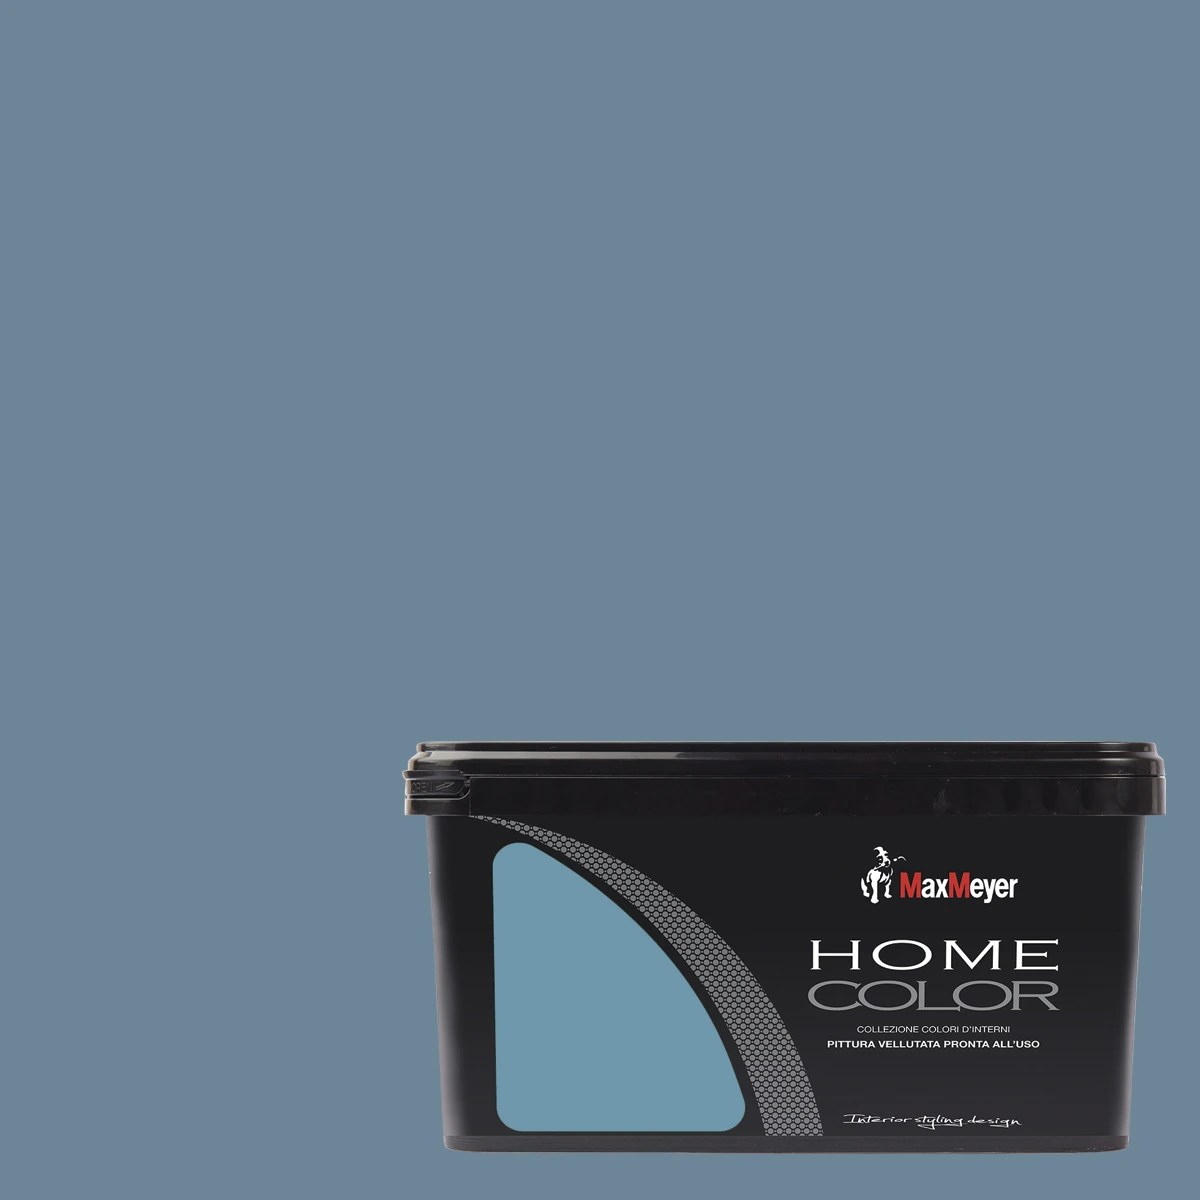 Pittura Lavabile Blu Idropittura Lavabile Home Color Navy 2 5 L Max Meyer